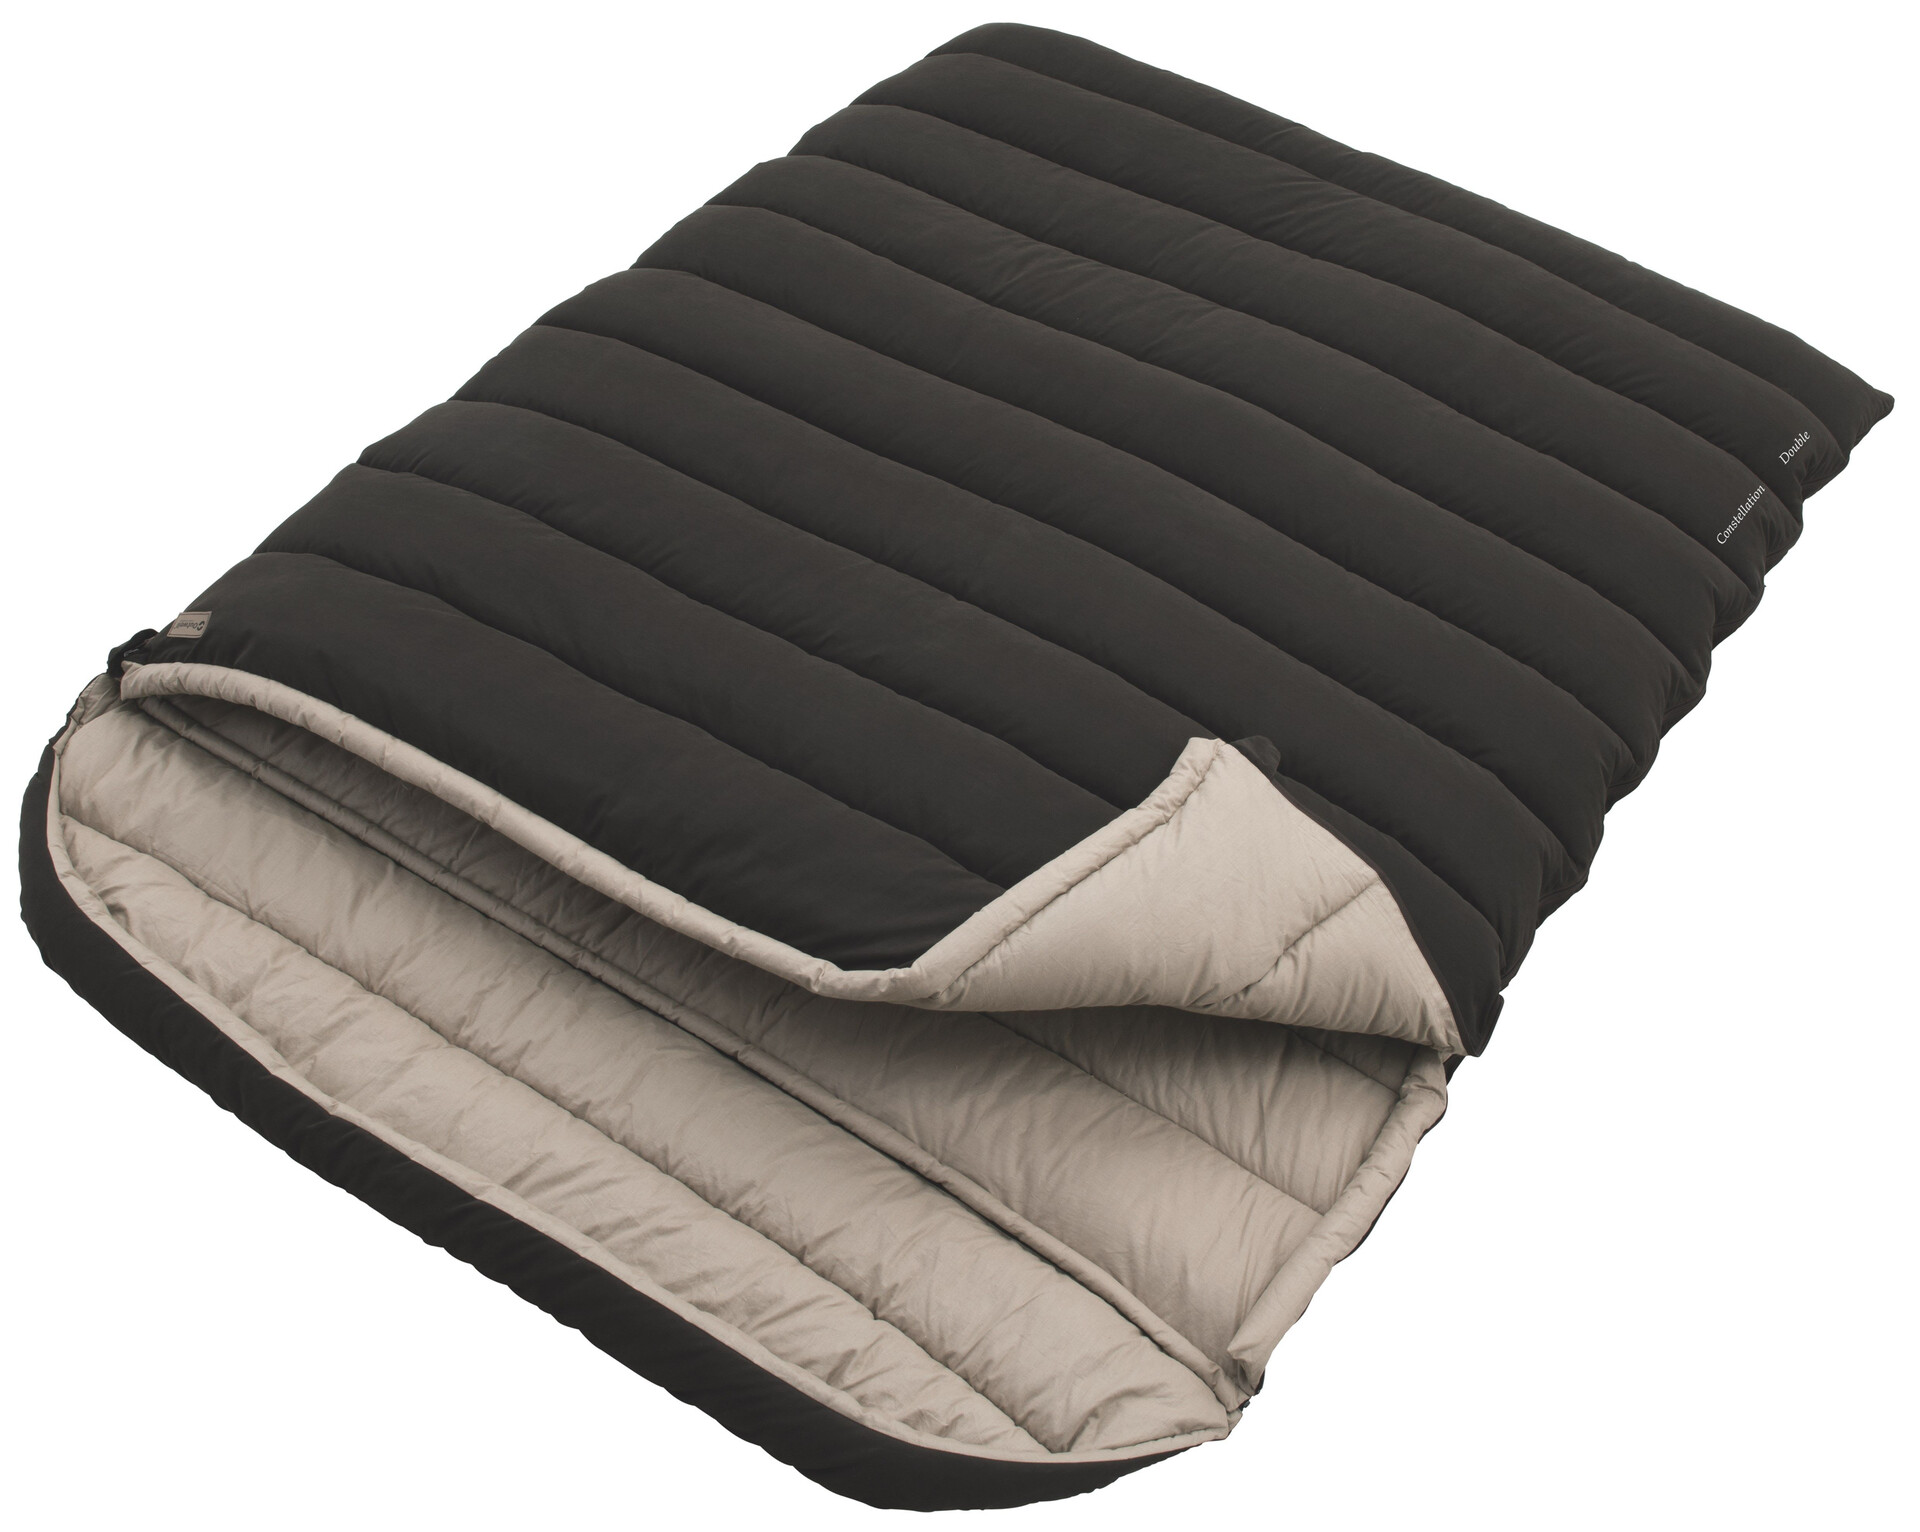 Outwell Camper Lux Sac de couchage